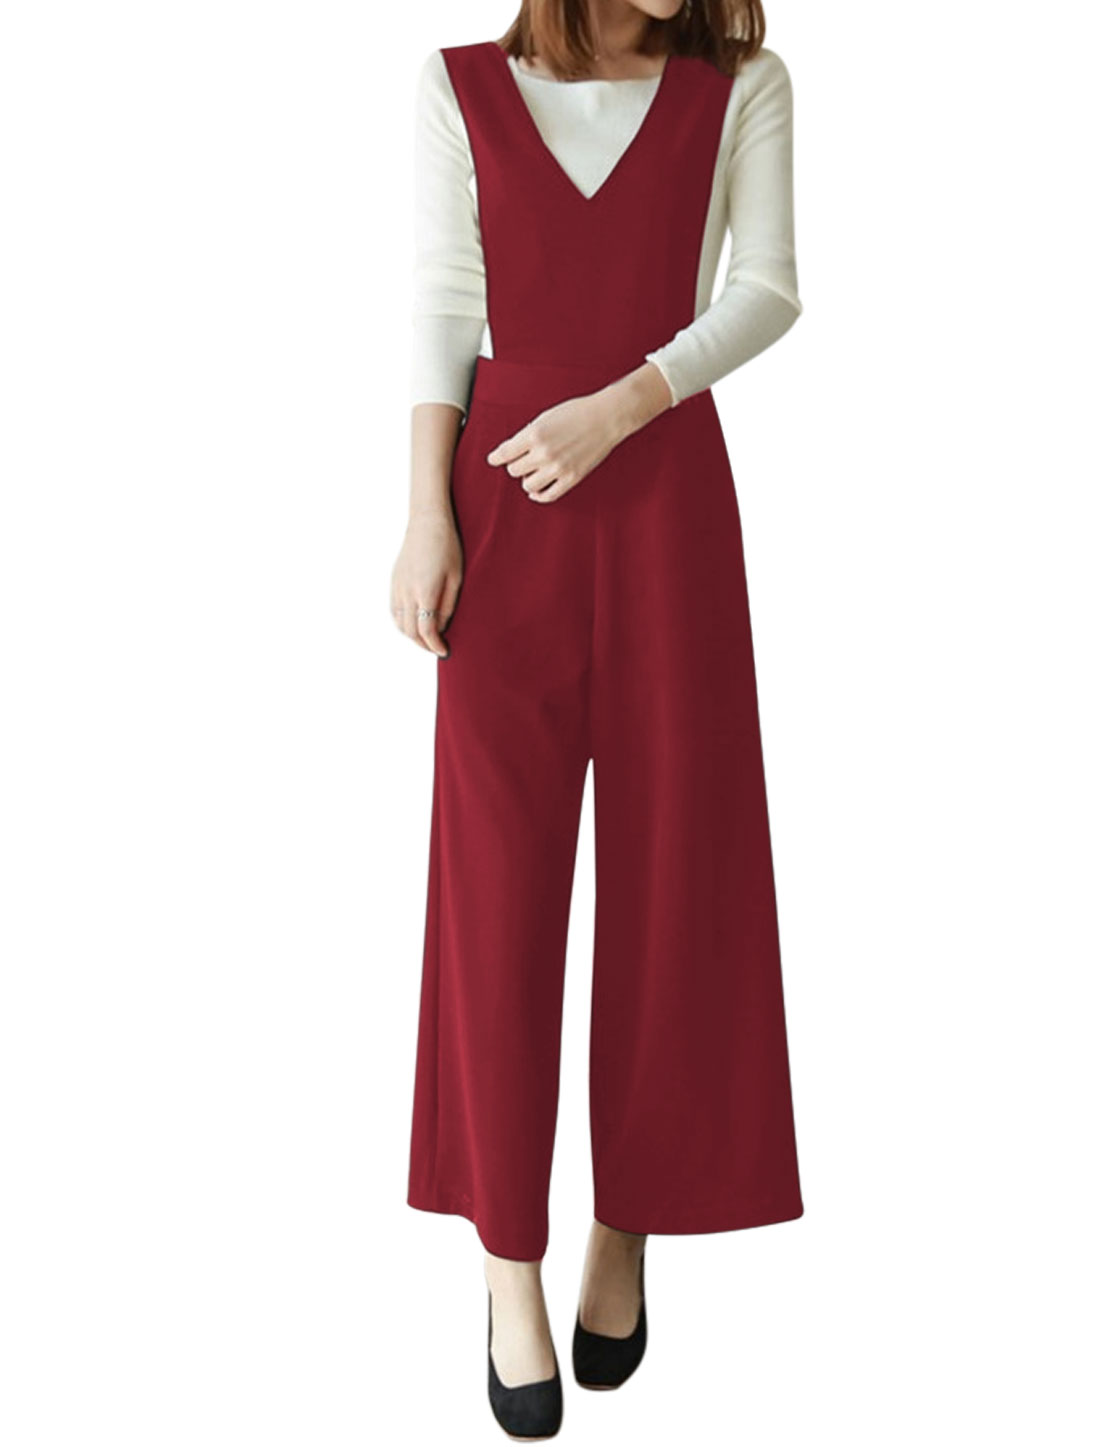 Women High Waist Inverted Front Wide Leg Suspender Pants Red S